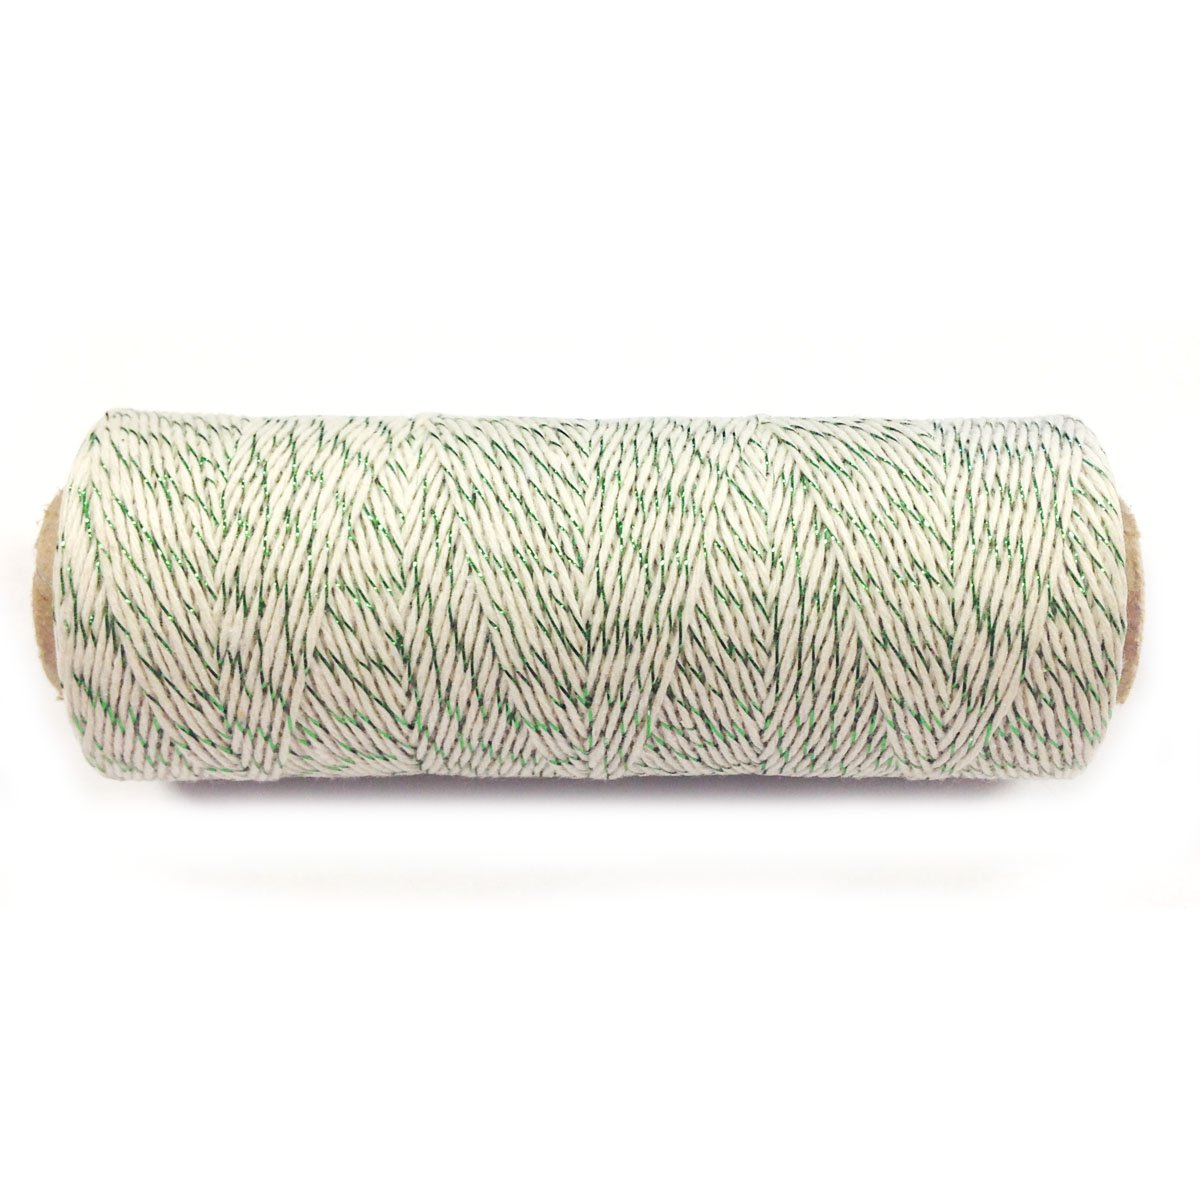 WrapablesコットンBaker 's Twine 4ply 110ヤード 6049290 B00LBDUBAY Green Metalic